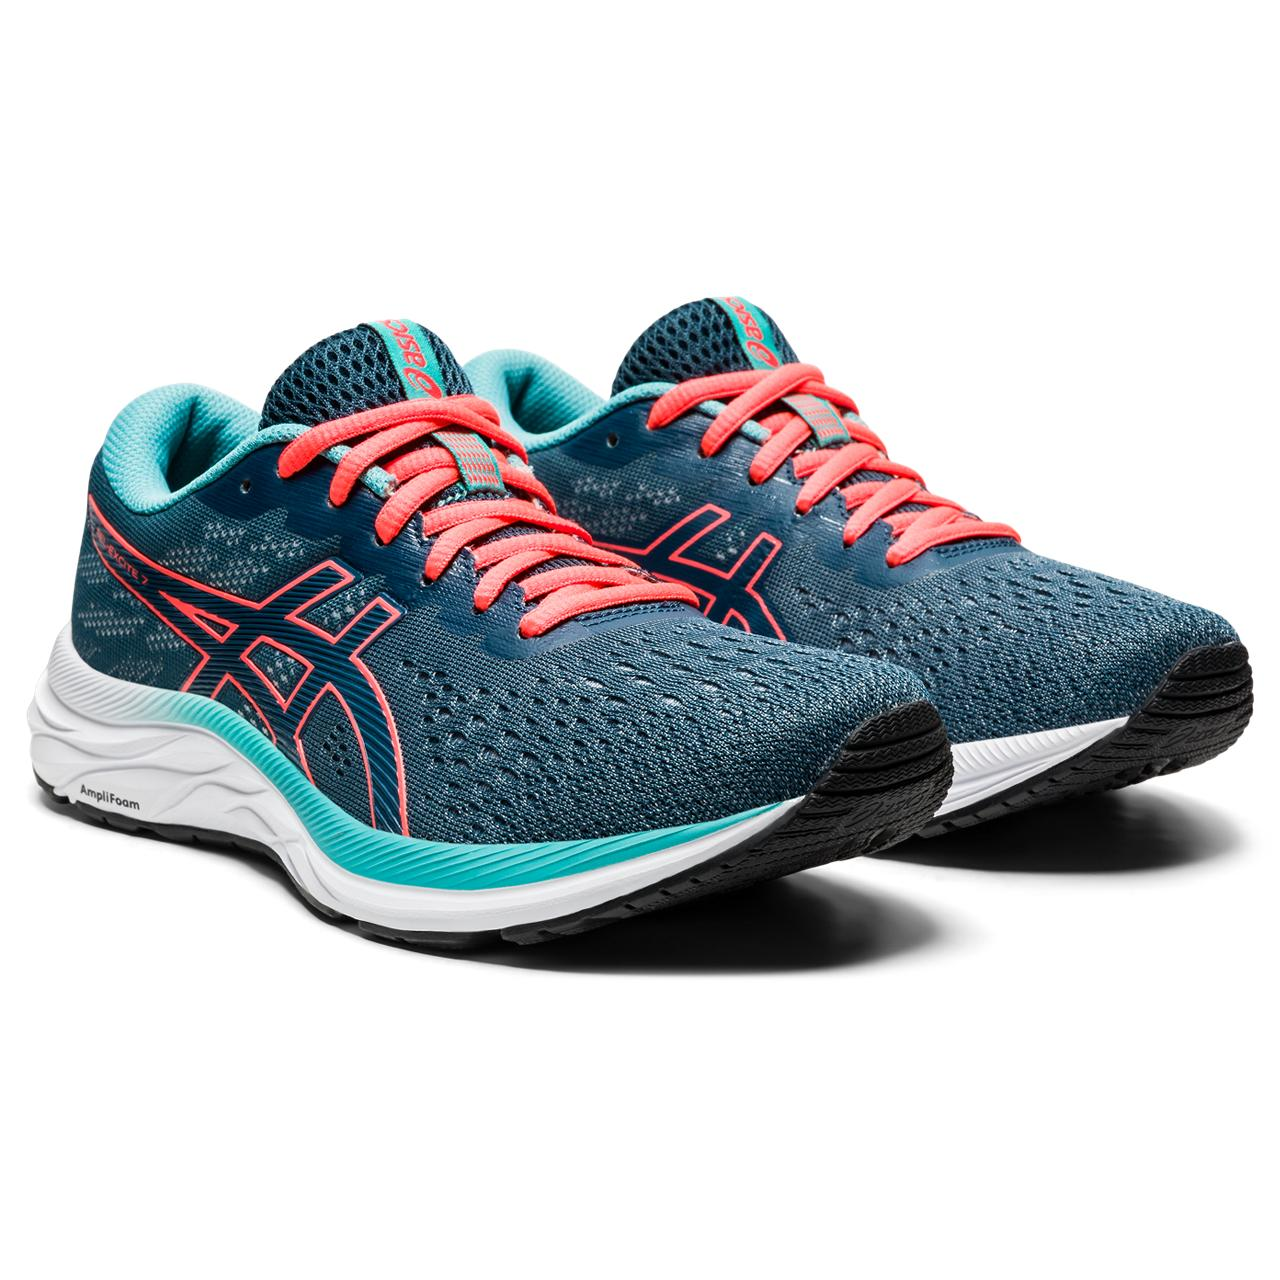 'ASICS' Women's Gel-Excite 7 - Magnetic Blue / Sunrise Red